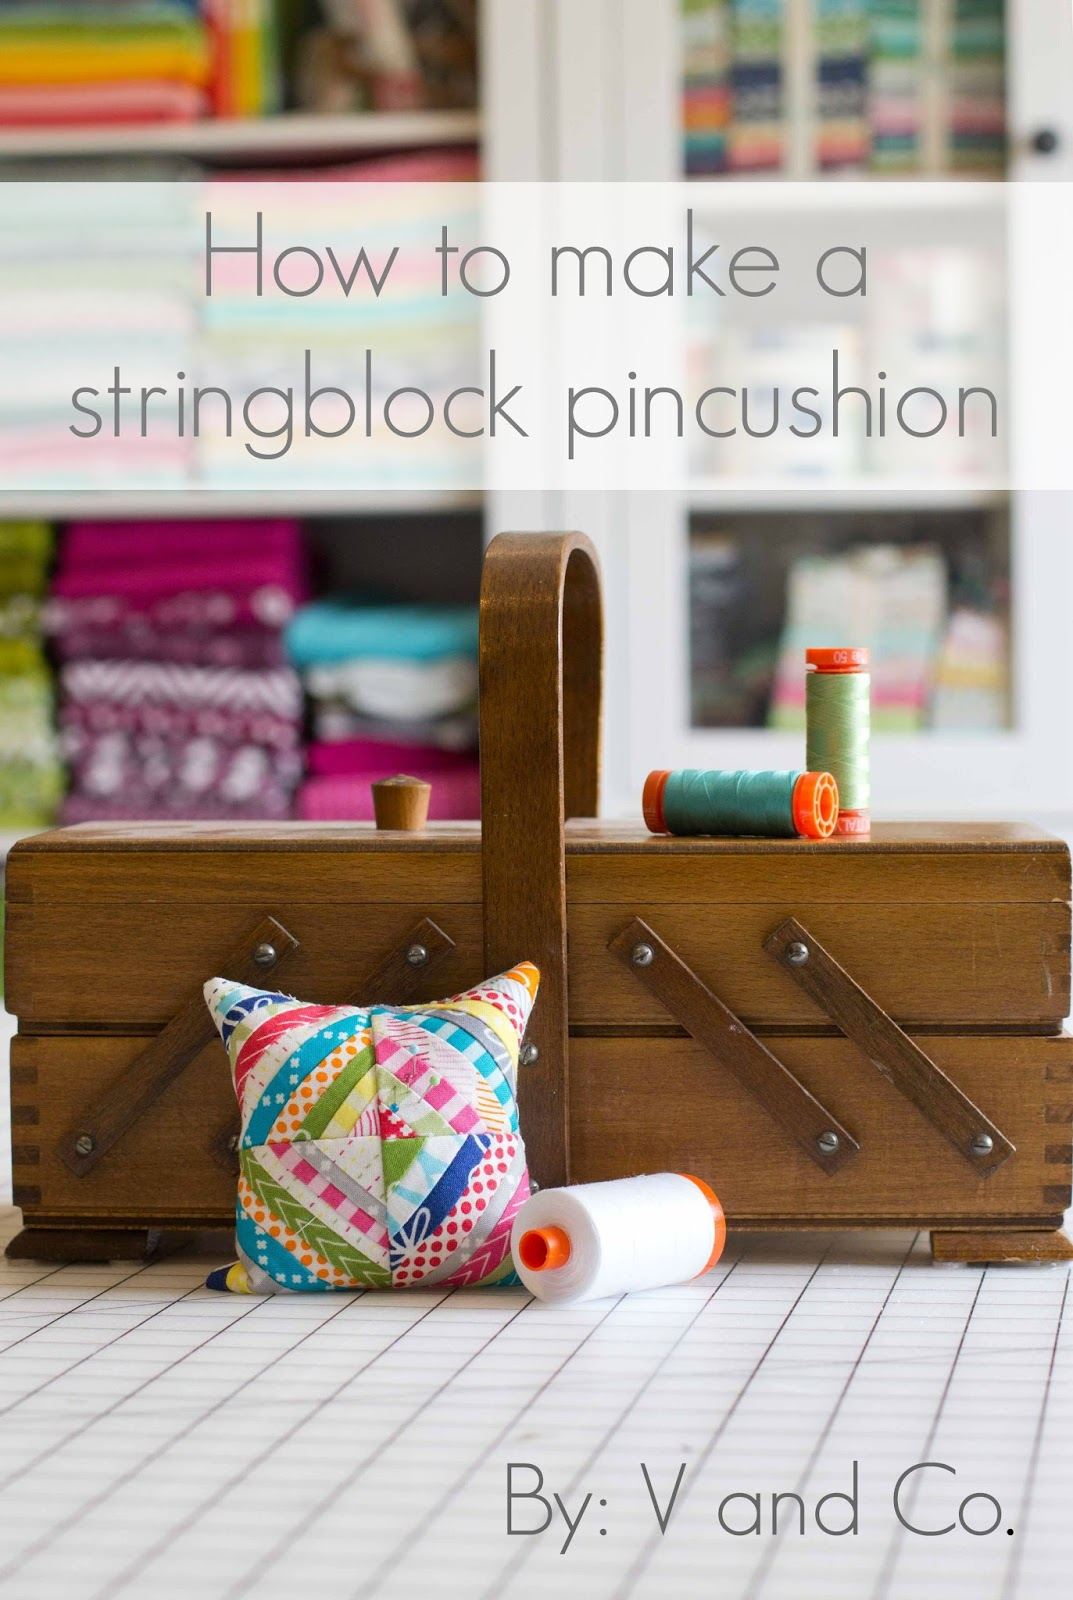 V and Co v and Co How to Make a Little String Block Pincushion